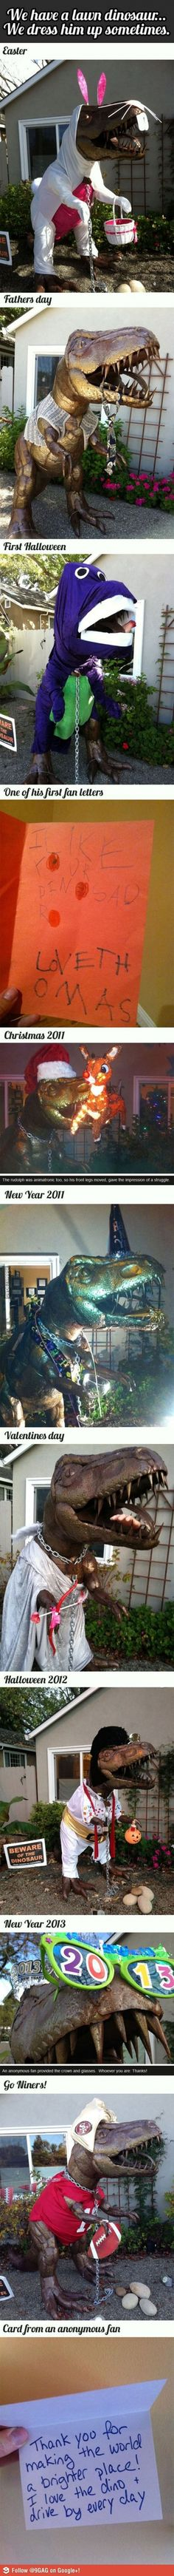 I will someday have my very own awesome lawn dinosaur to costume.